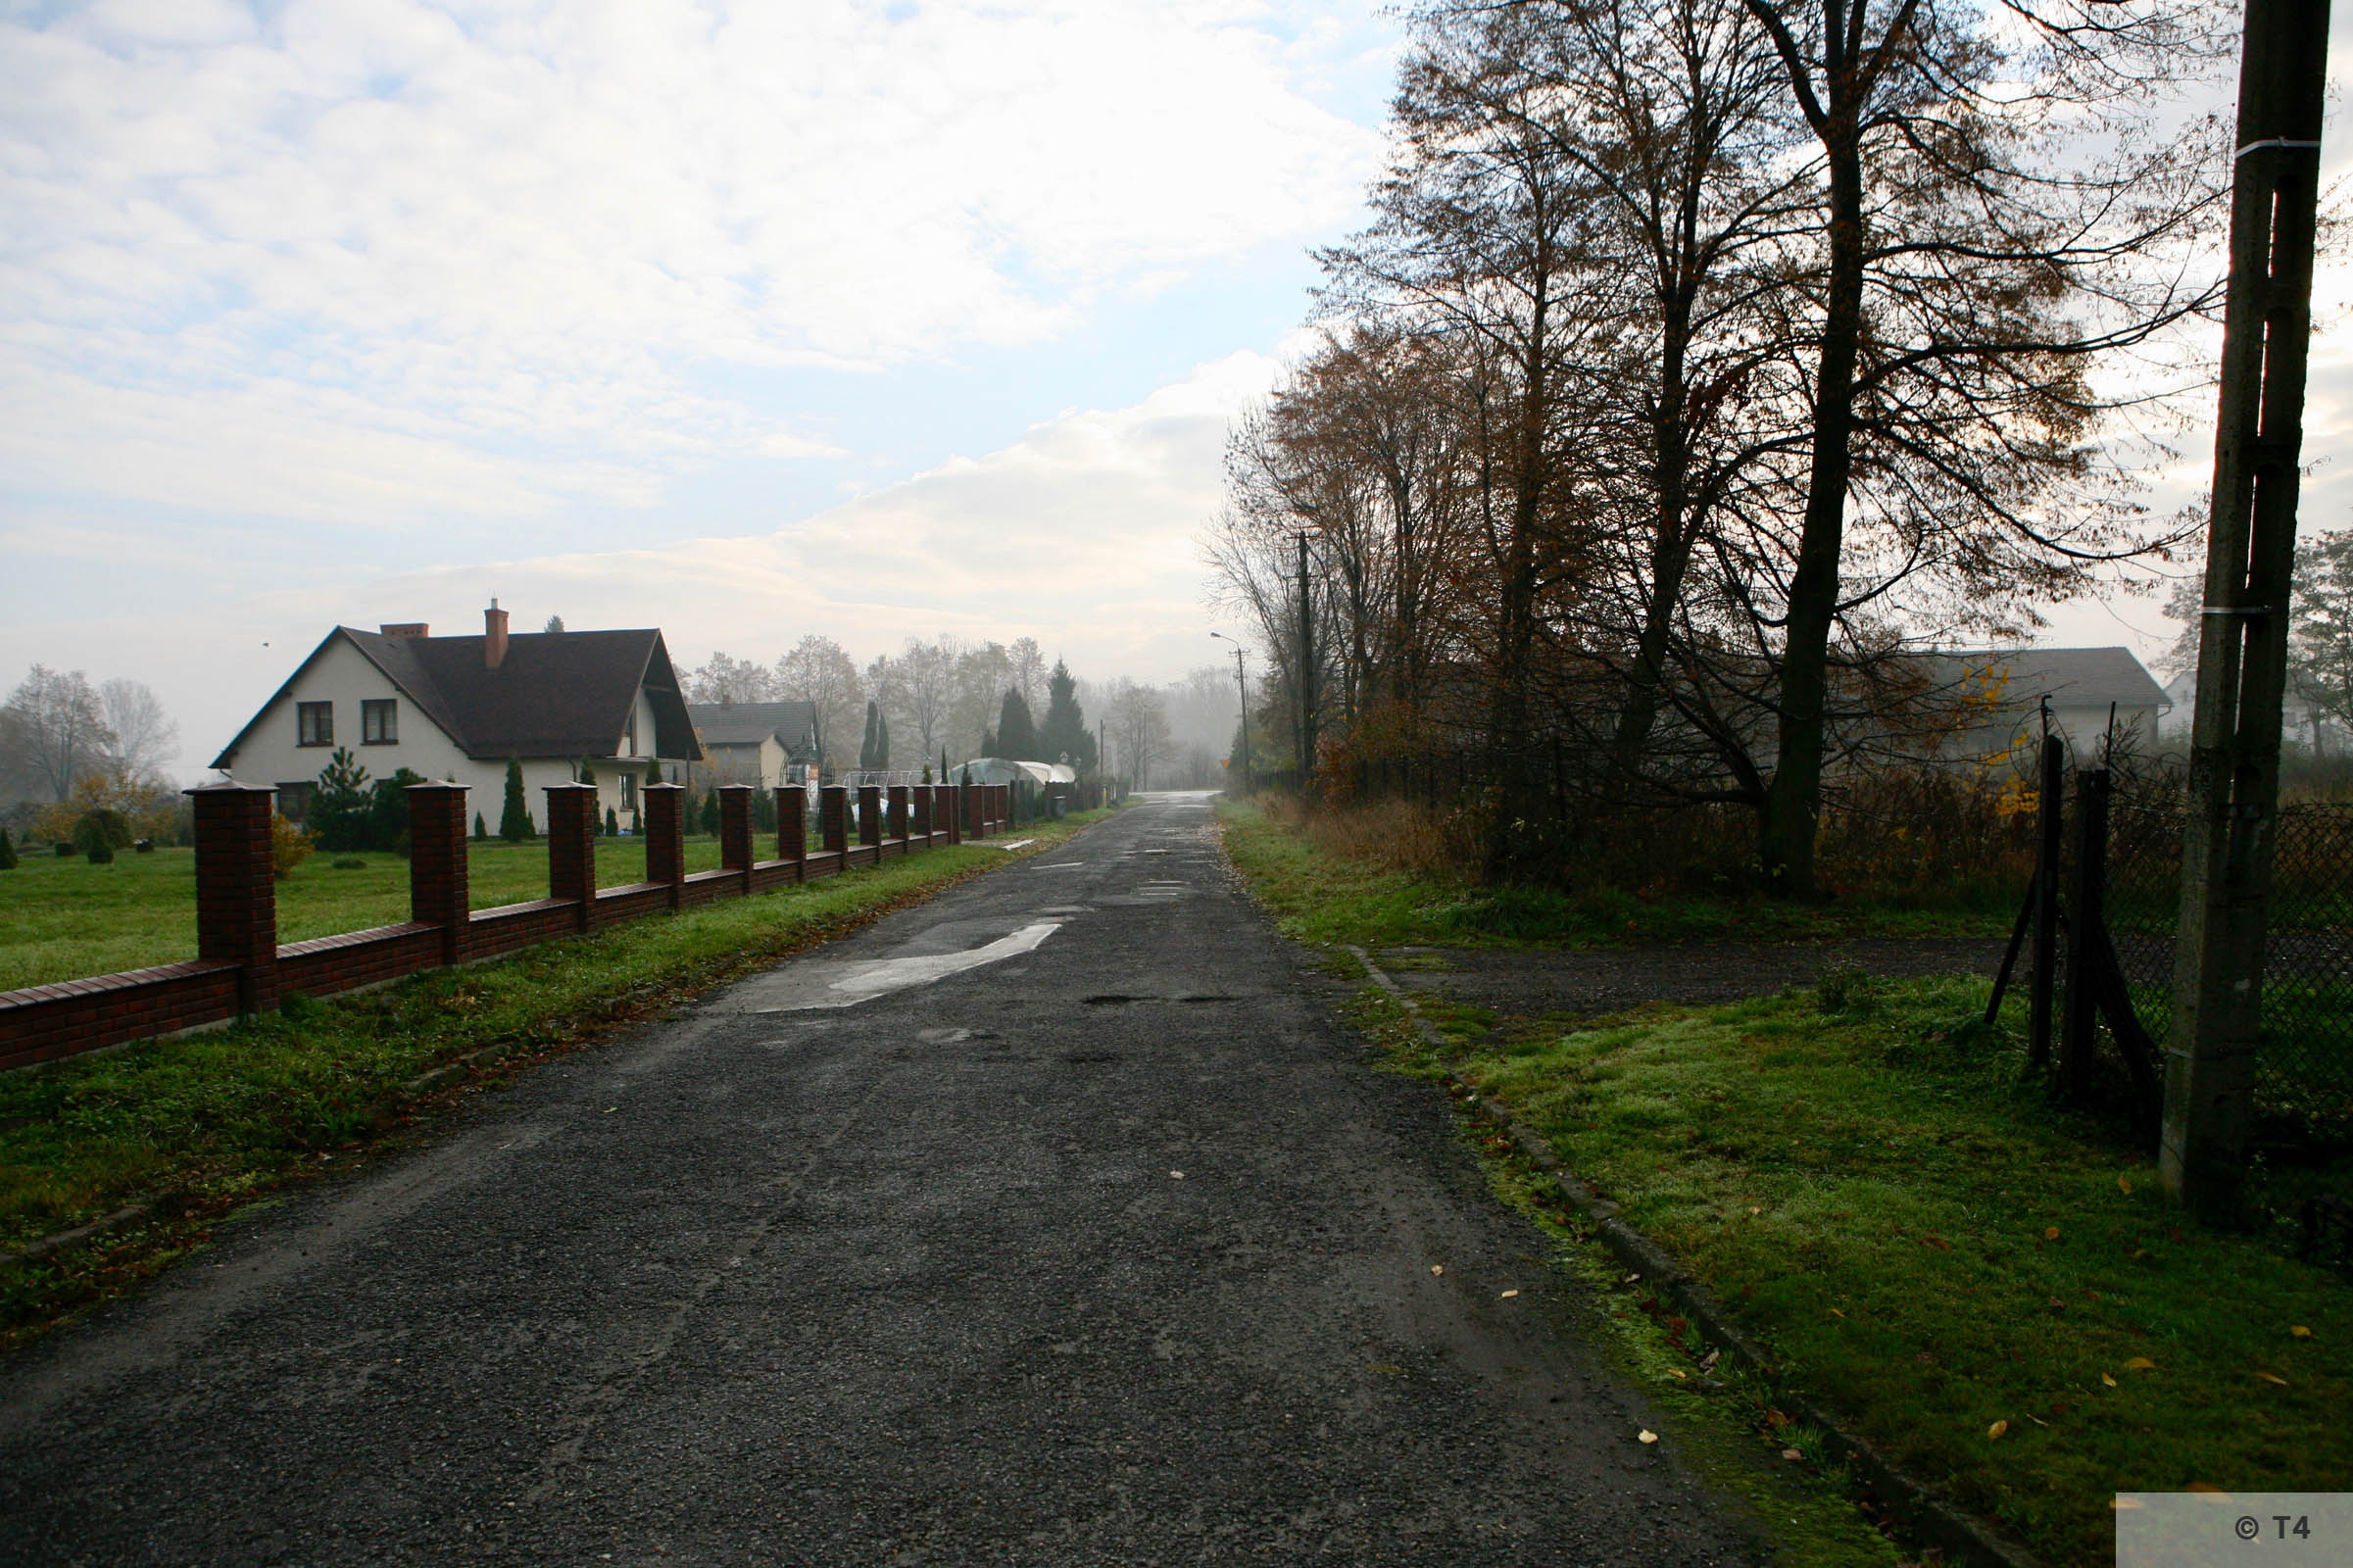 Road from former sub camp to main highway. 2007 T4 2941